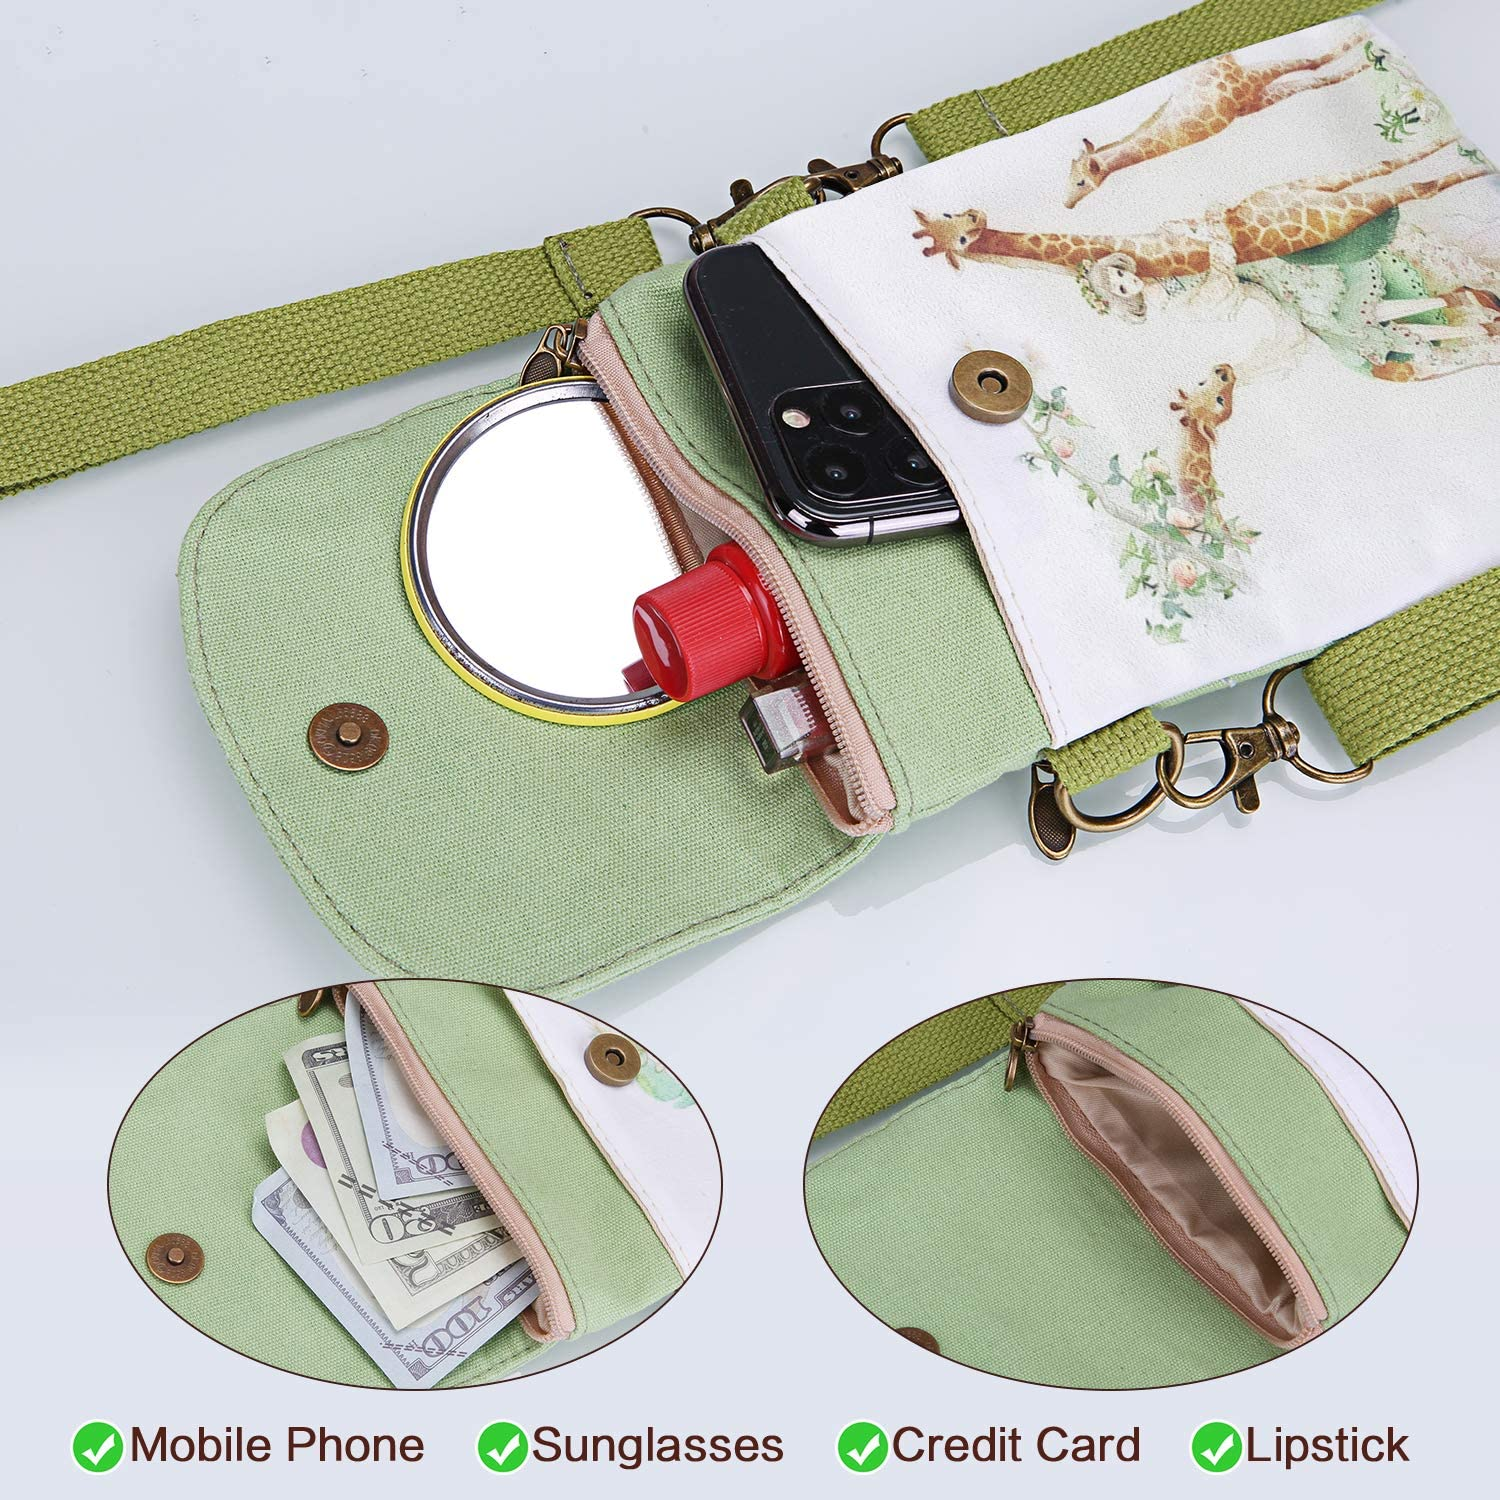 Veediyin Abaddon Crossbody Bags Canvas Small Cute Cell Wallet Bag Phone Purse with Shoulder Strap coin purse Candy Bag